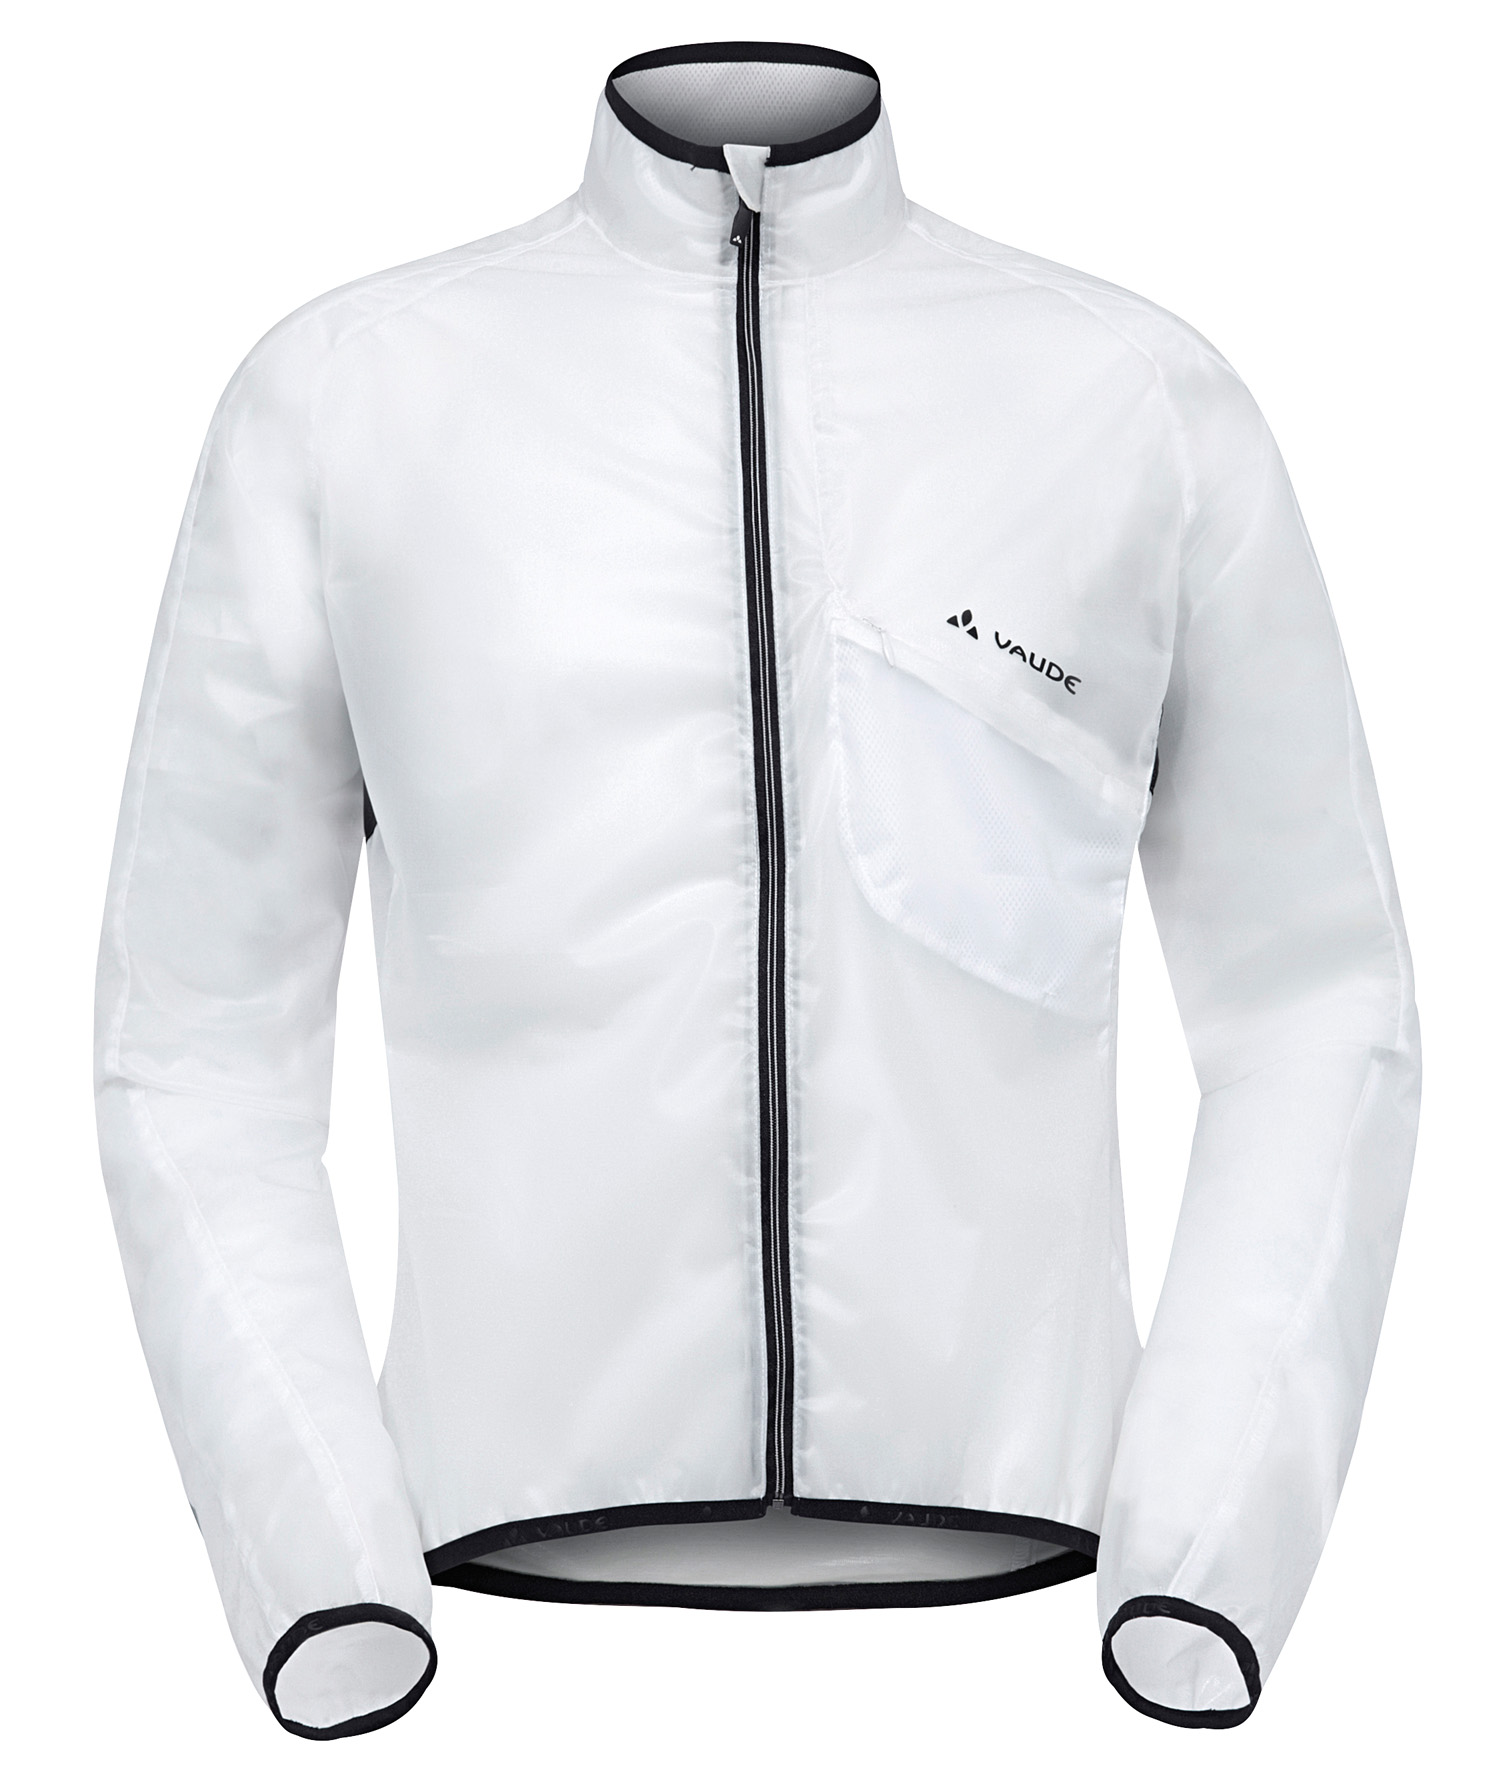 Men´s Unique Jacket III white Größe S - schneider-sports